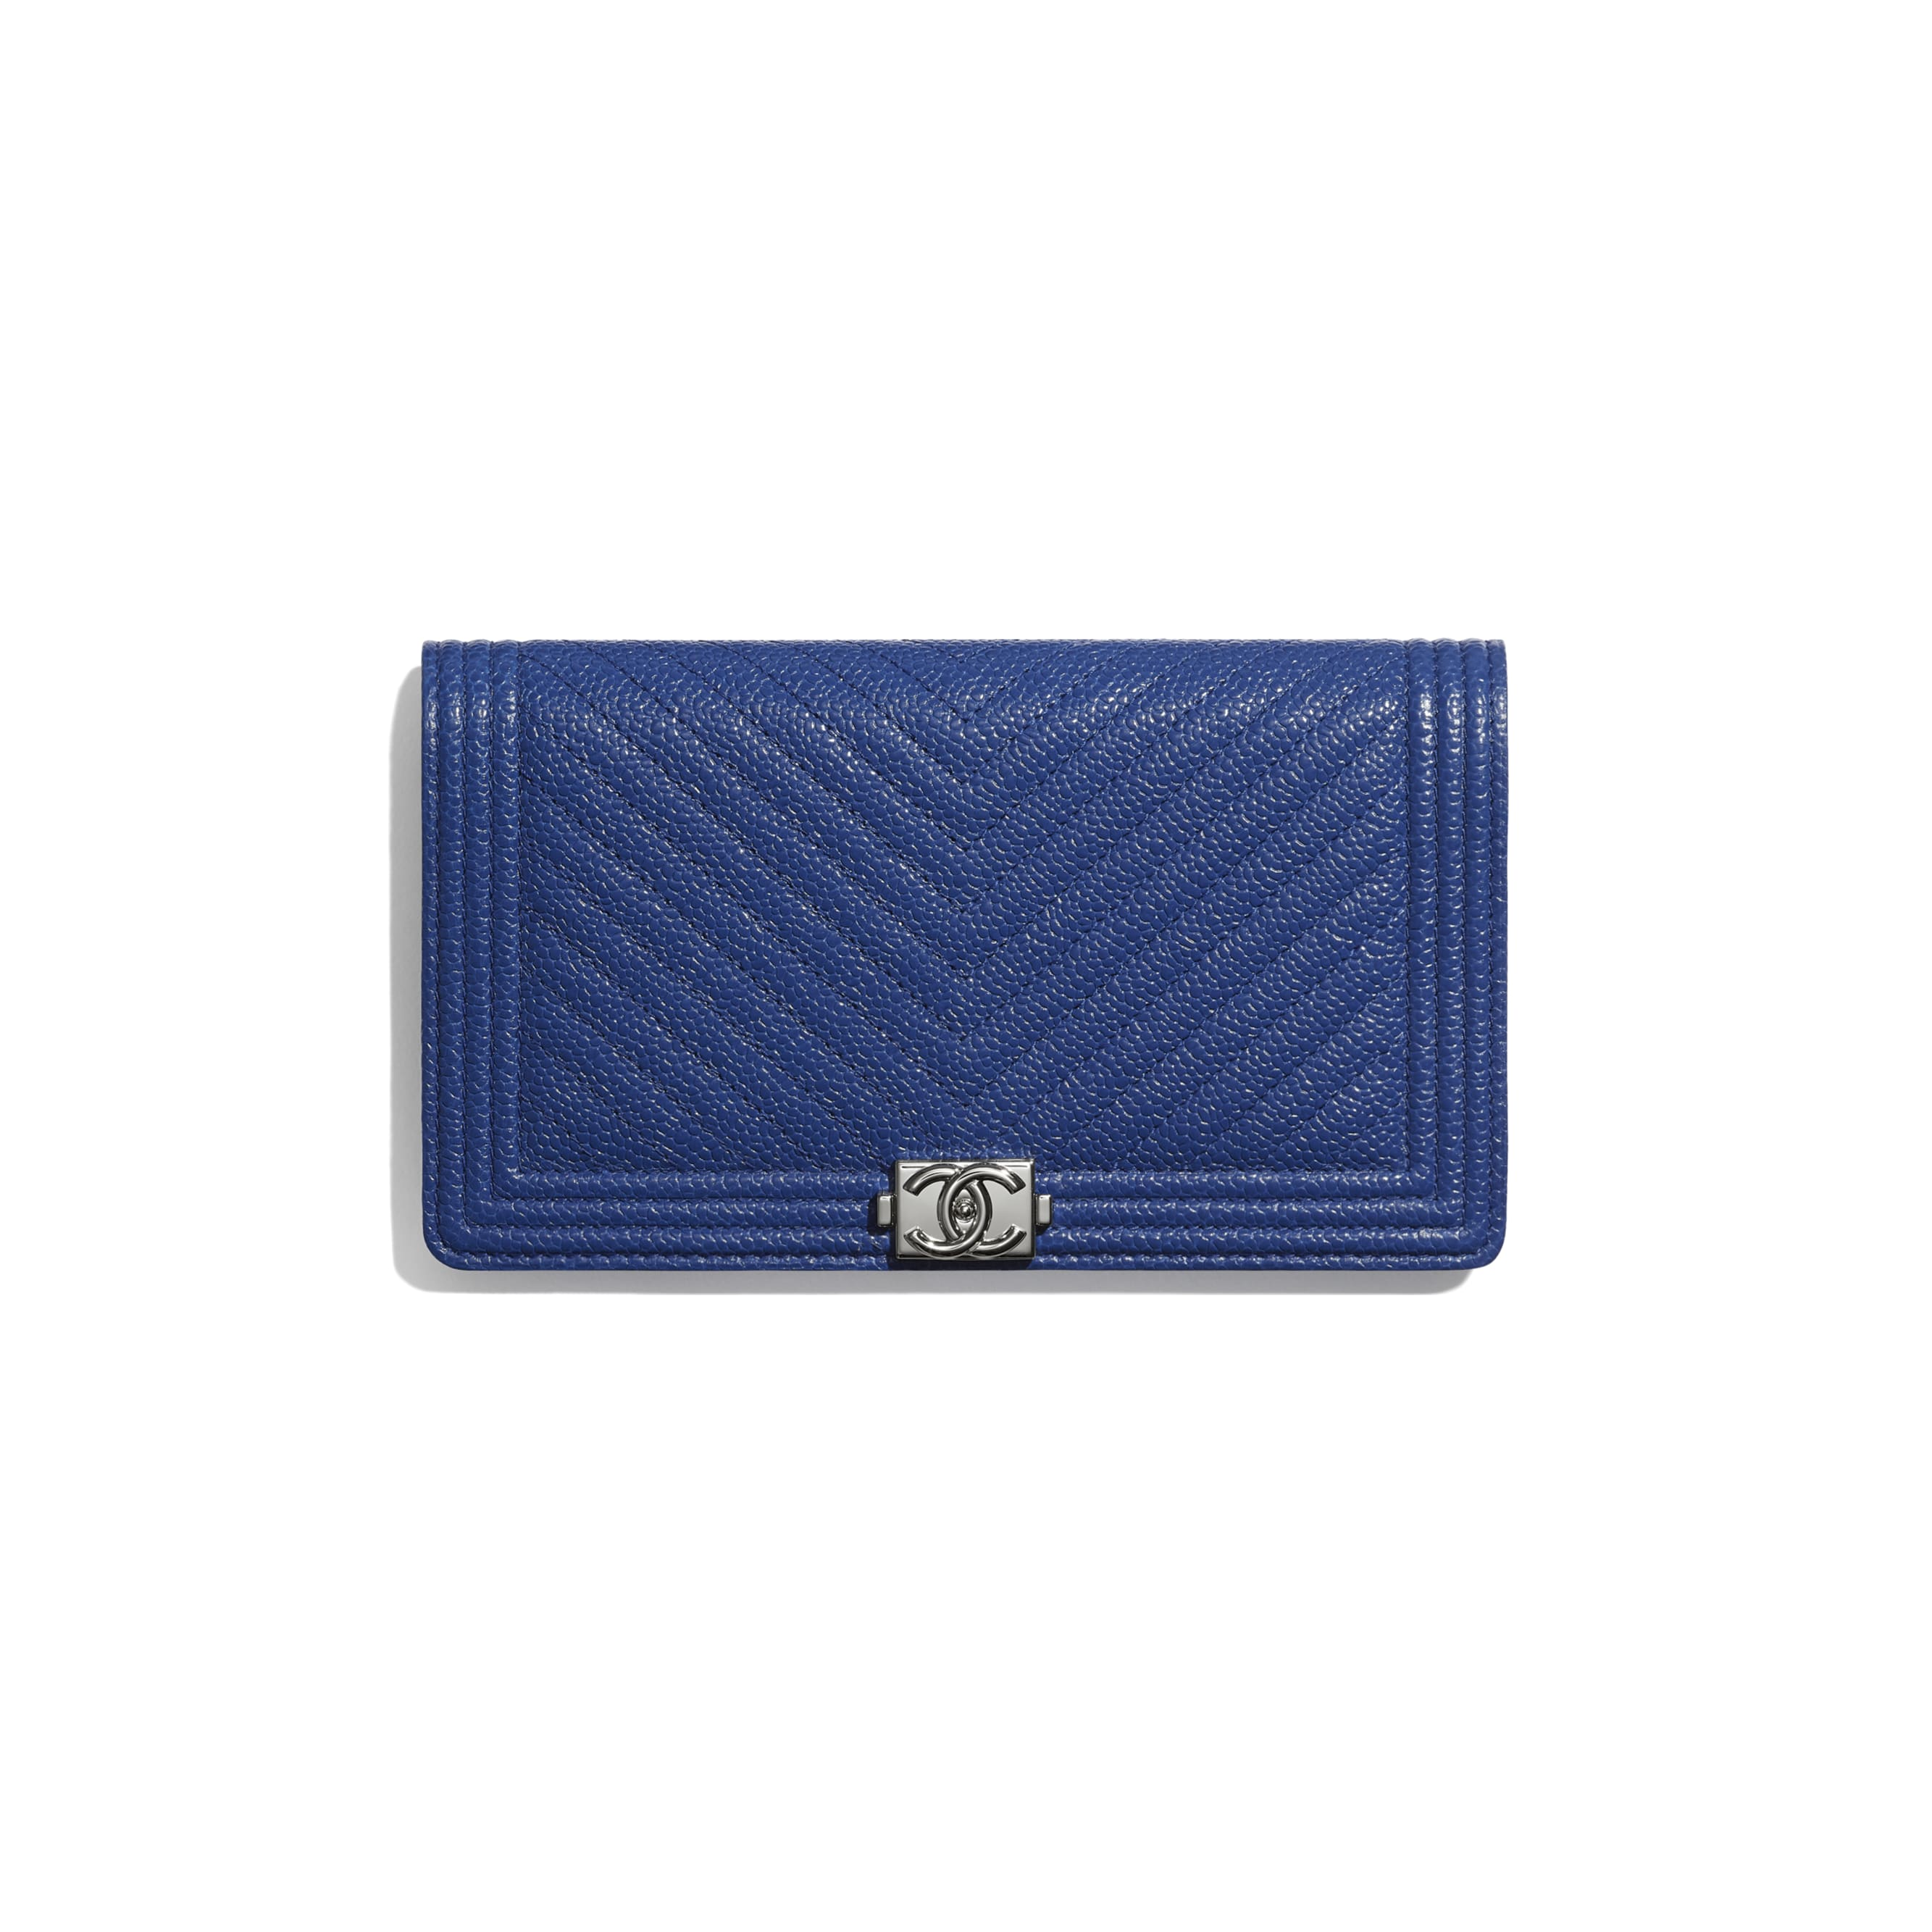 BOY CHANEL Long Flap Wallet - Dark Blue - Shiny Grained Calfskin & Silver-Tone Metal - CHANEL - Default view - see standard sized version